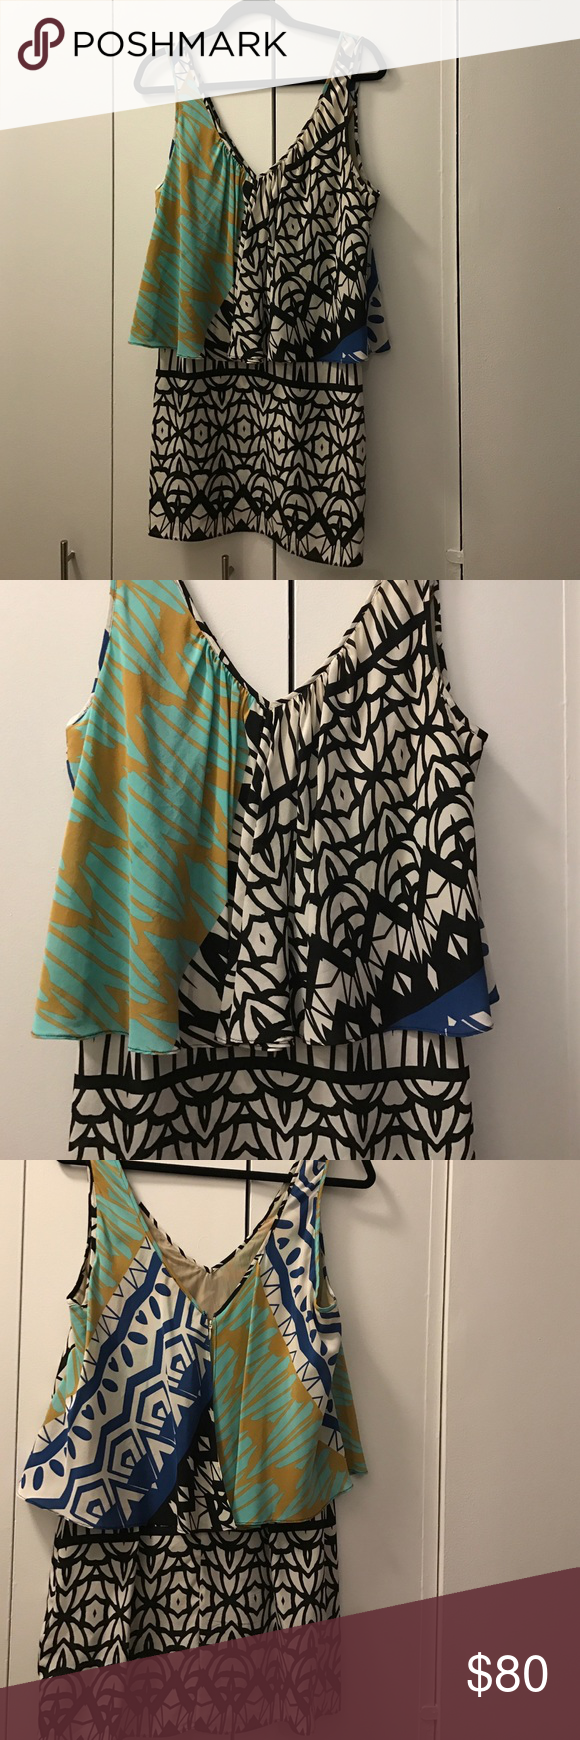 Printed spring dress. Good quality fabric, almost new condition. Has a little stretch to the fabric with lining in the top. Zipper on the back with another layer for the top. Can look like a two piece dress. Doesn't show size but fits like a small Plenty by Tracy Reese Dresses